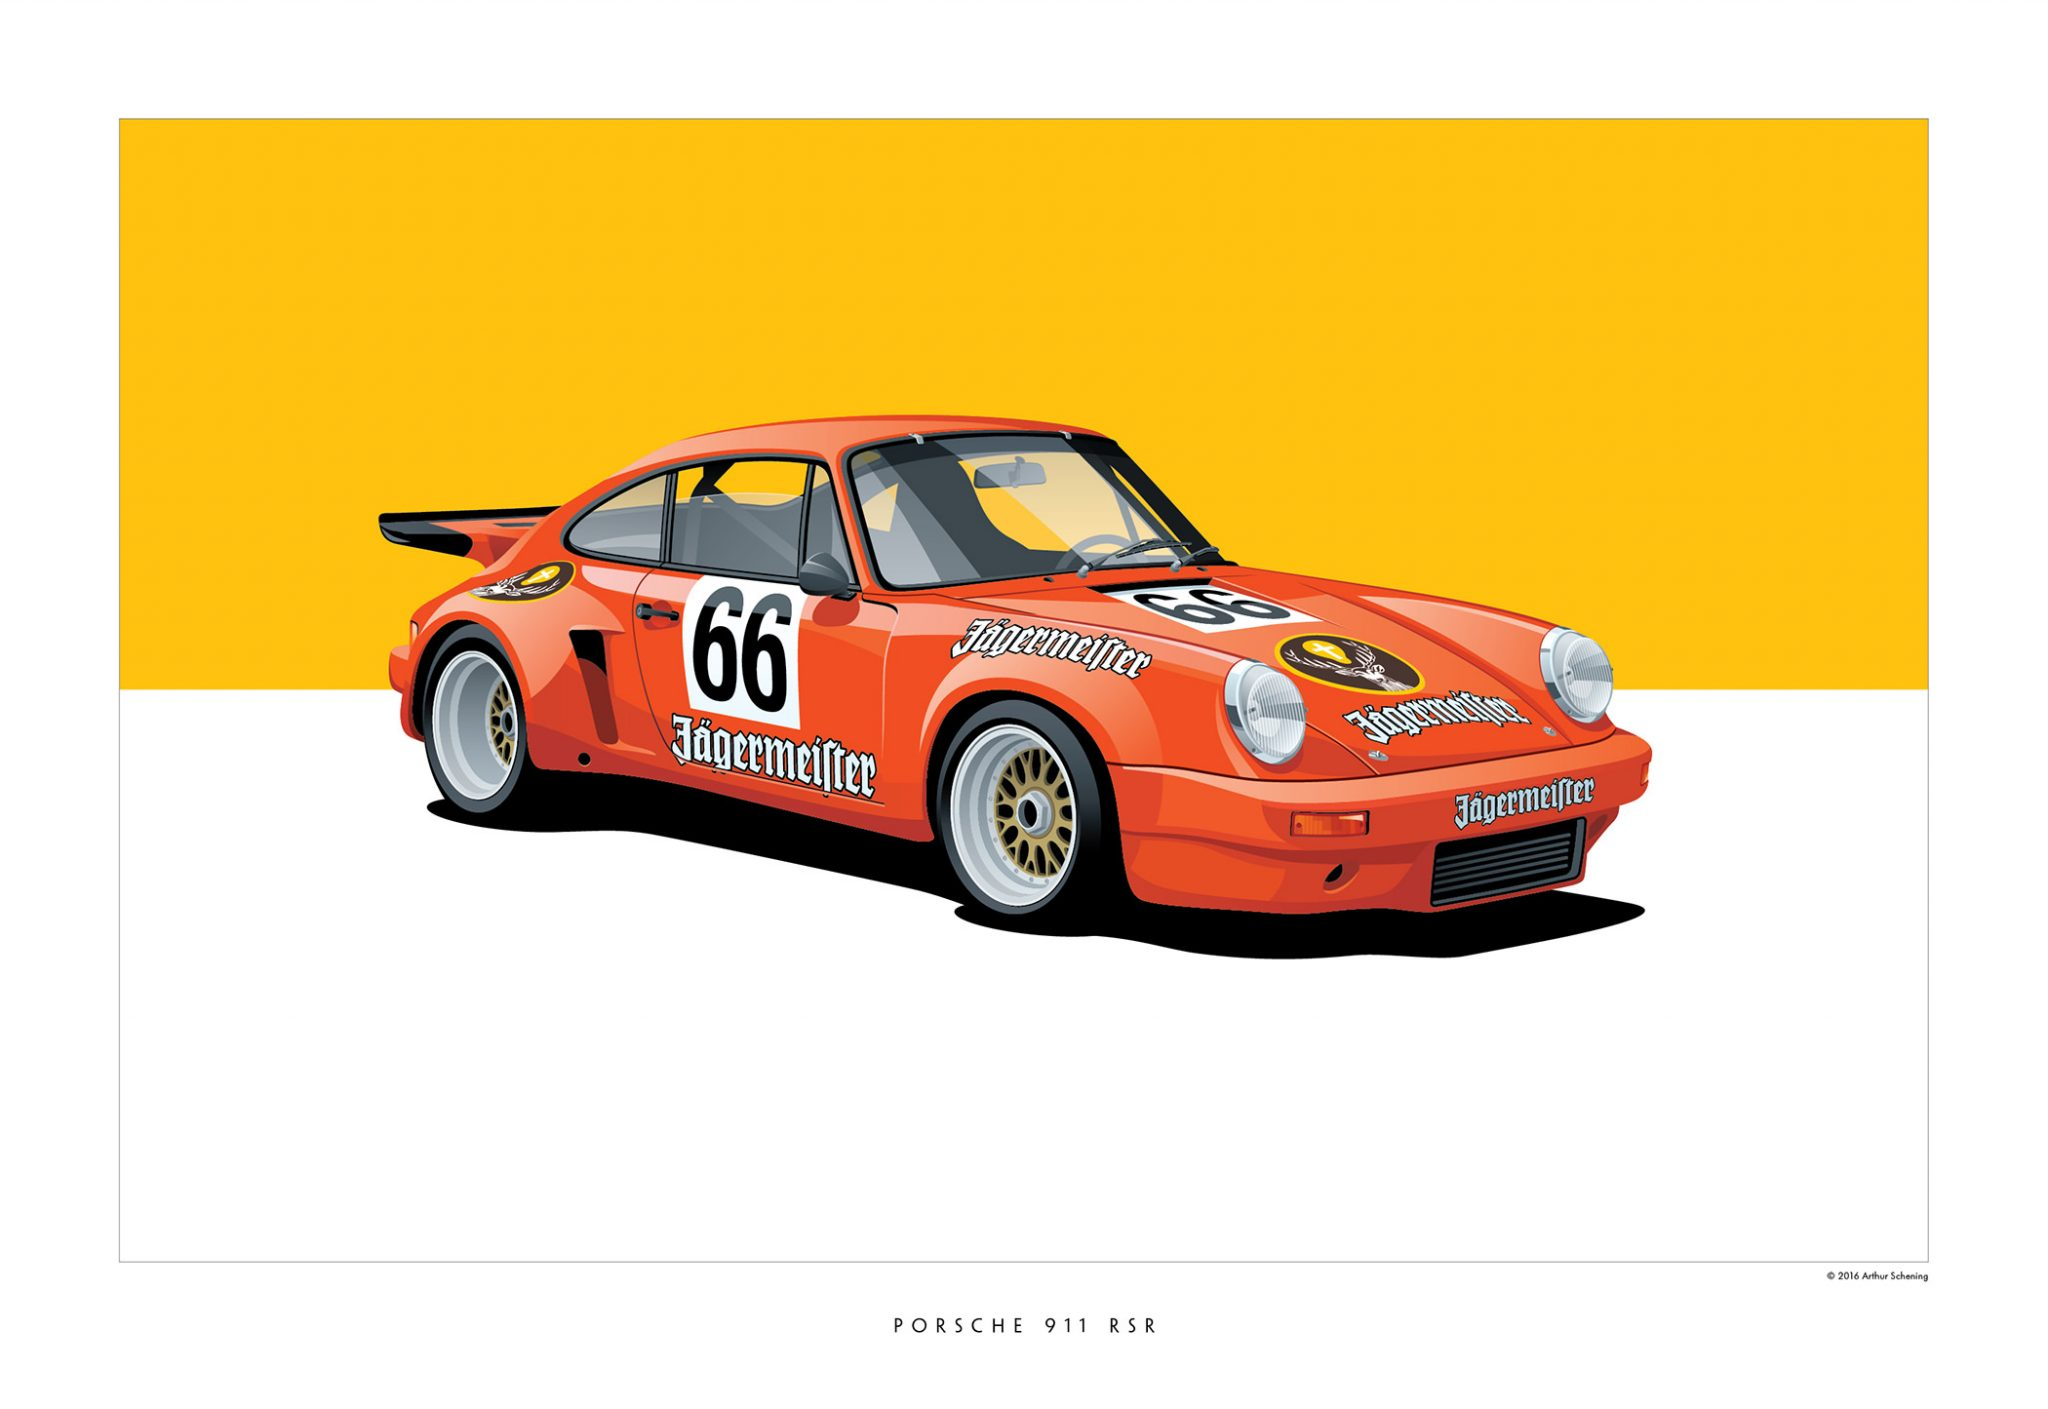 Iconic Racing Cars by Arthur Schening